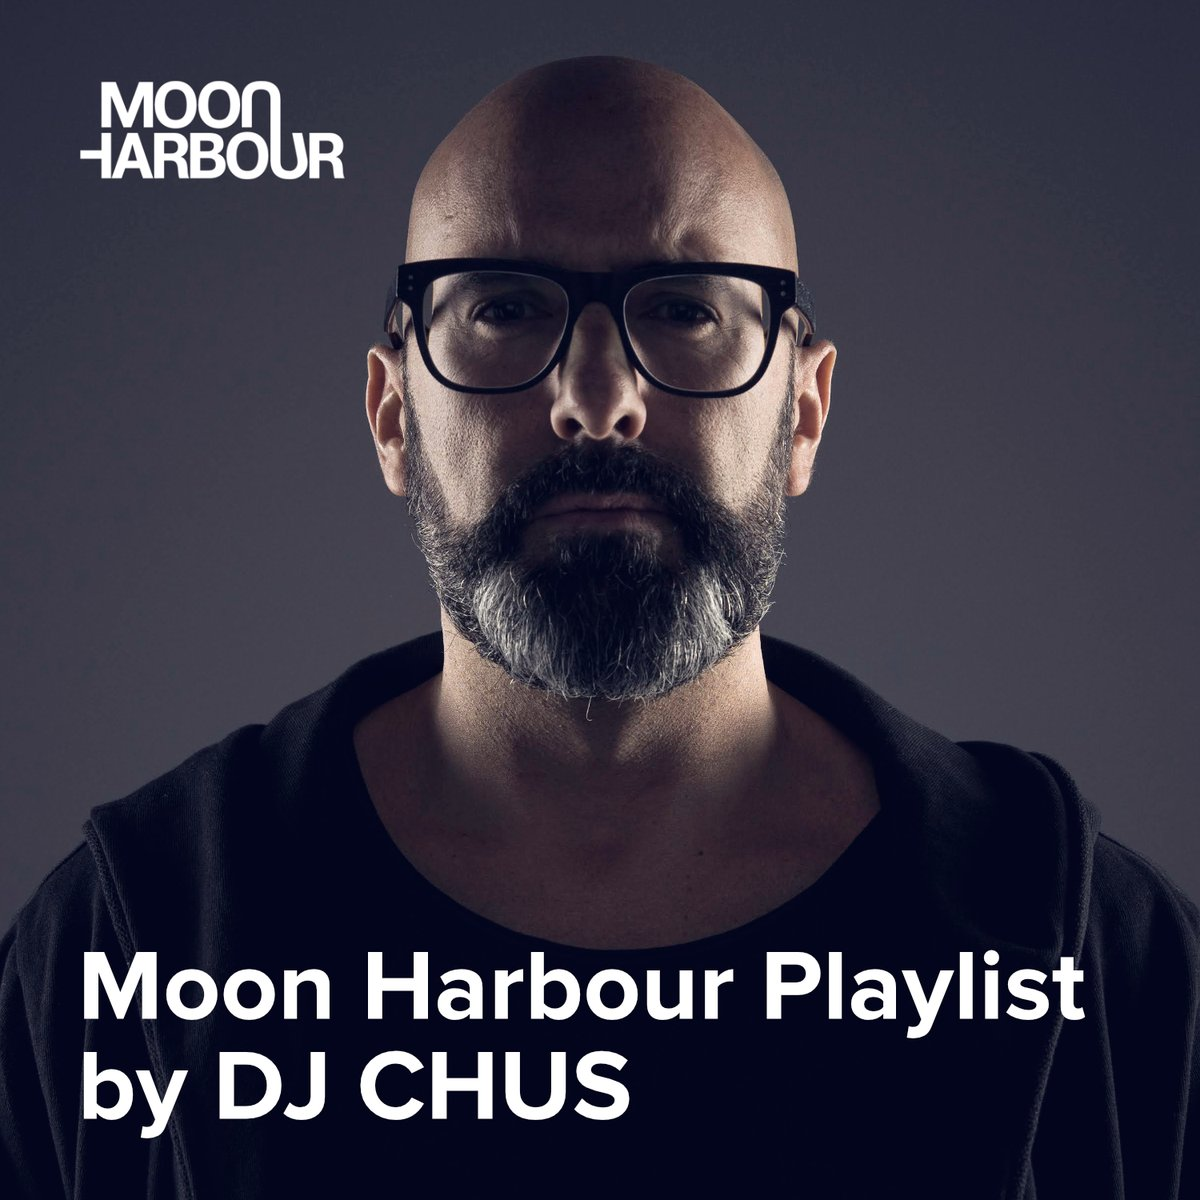 Check out the updated Moon Harbour Playlist hosted by @DJCHUS https://t.co/WUZQy19bPC https://t.co/xPWeUG8k69